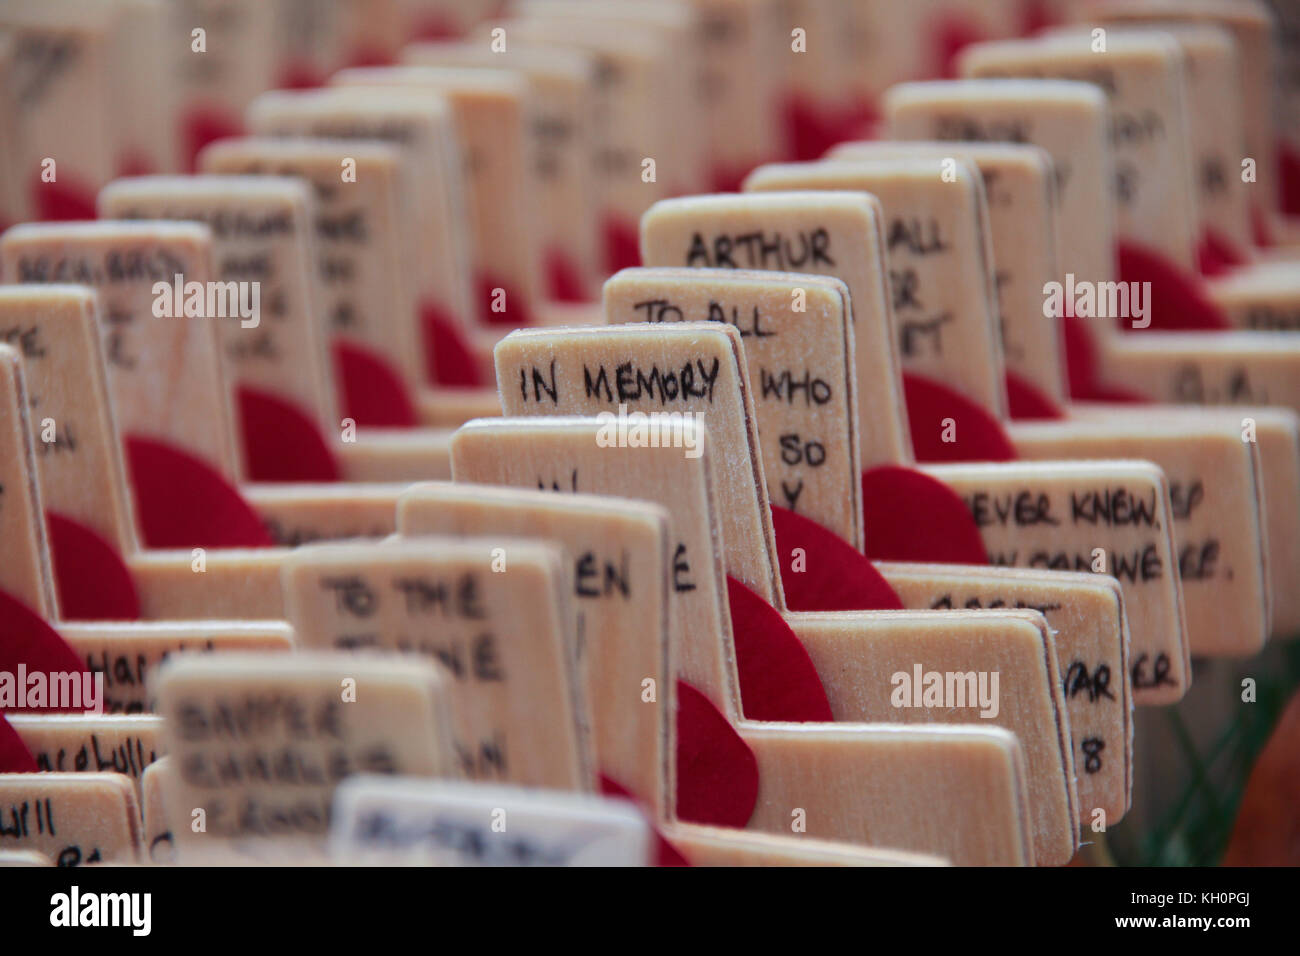 London, UK. 11th Nov, 2017. Thousands of crosses planted at the Fields of Remembrance at Westminster Abbey in London - Stock Image